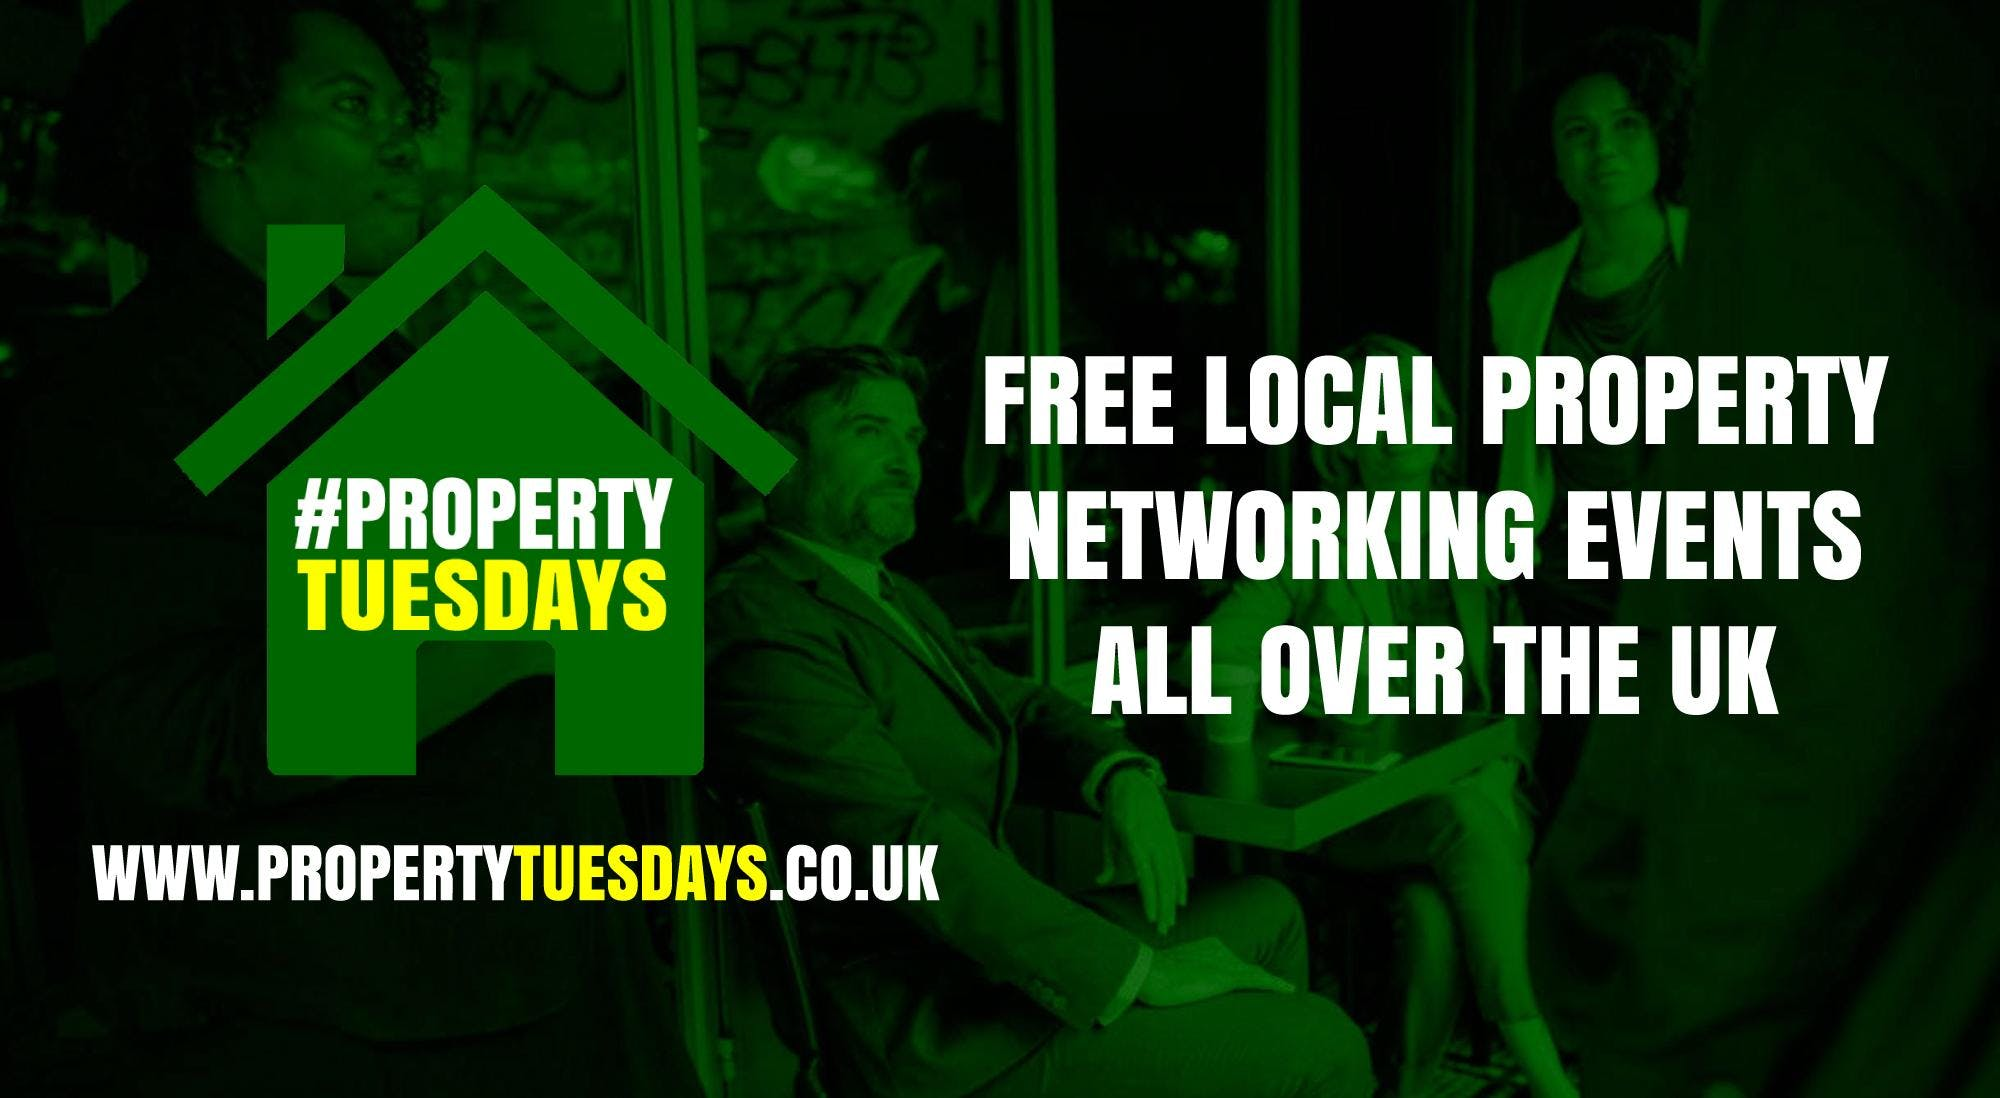 Property Tuesdays! Free property networking event in Cleckheaton